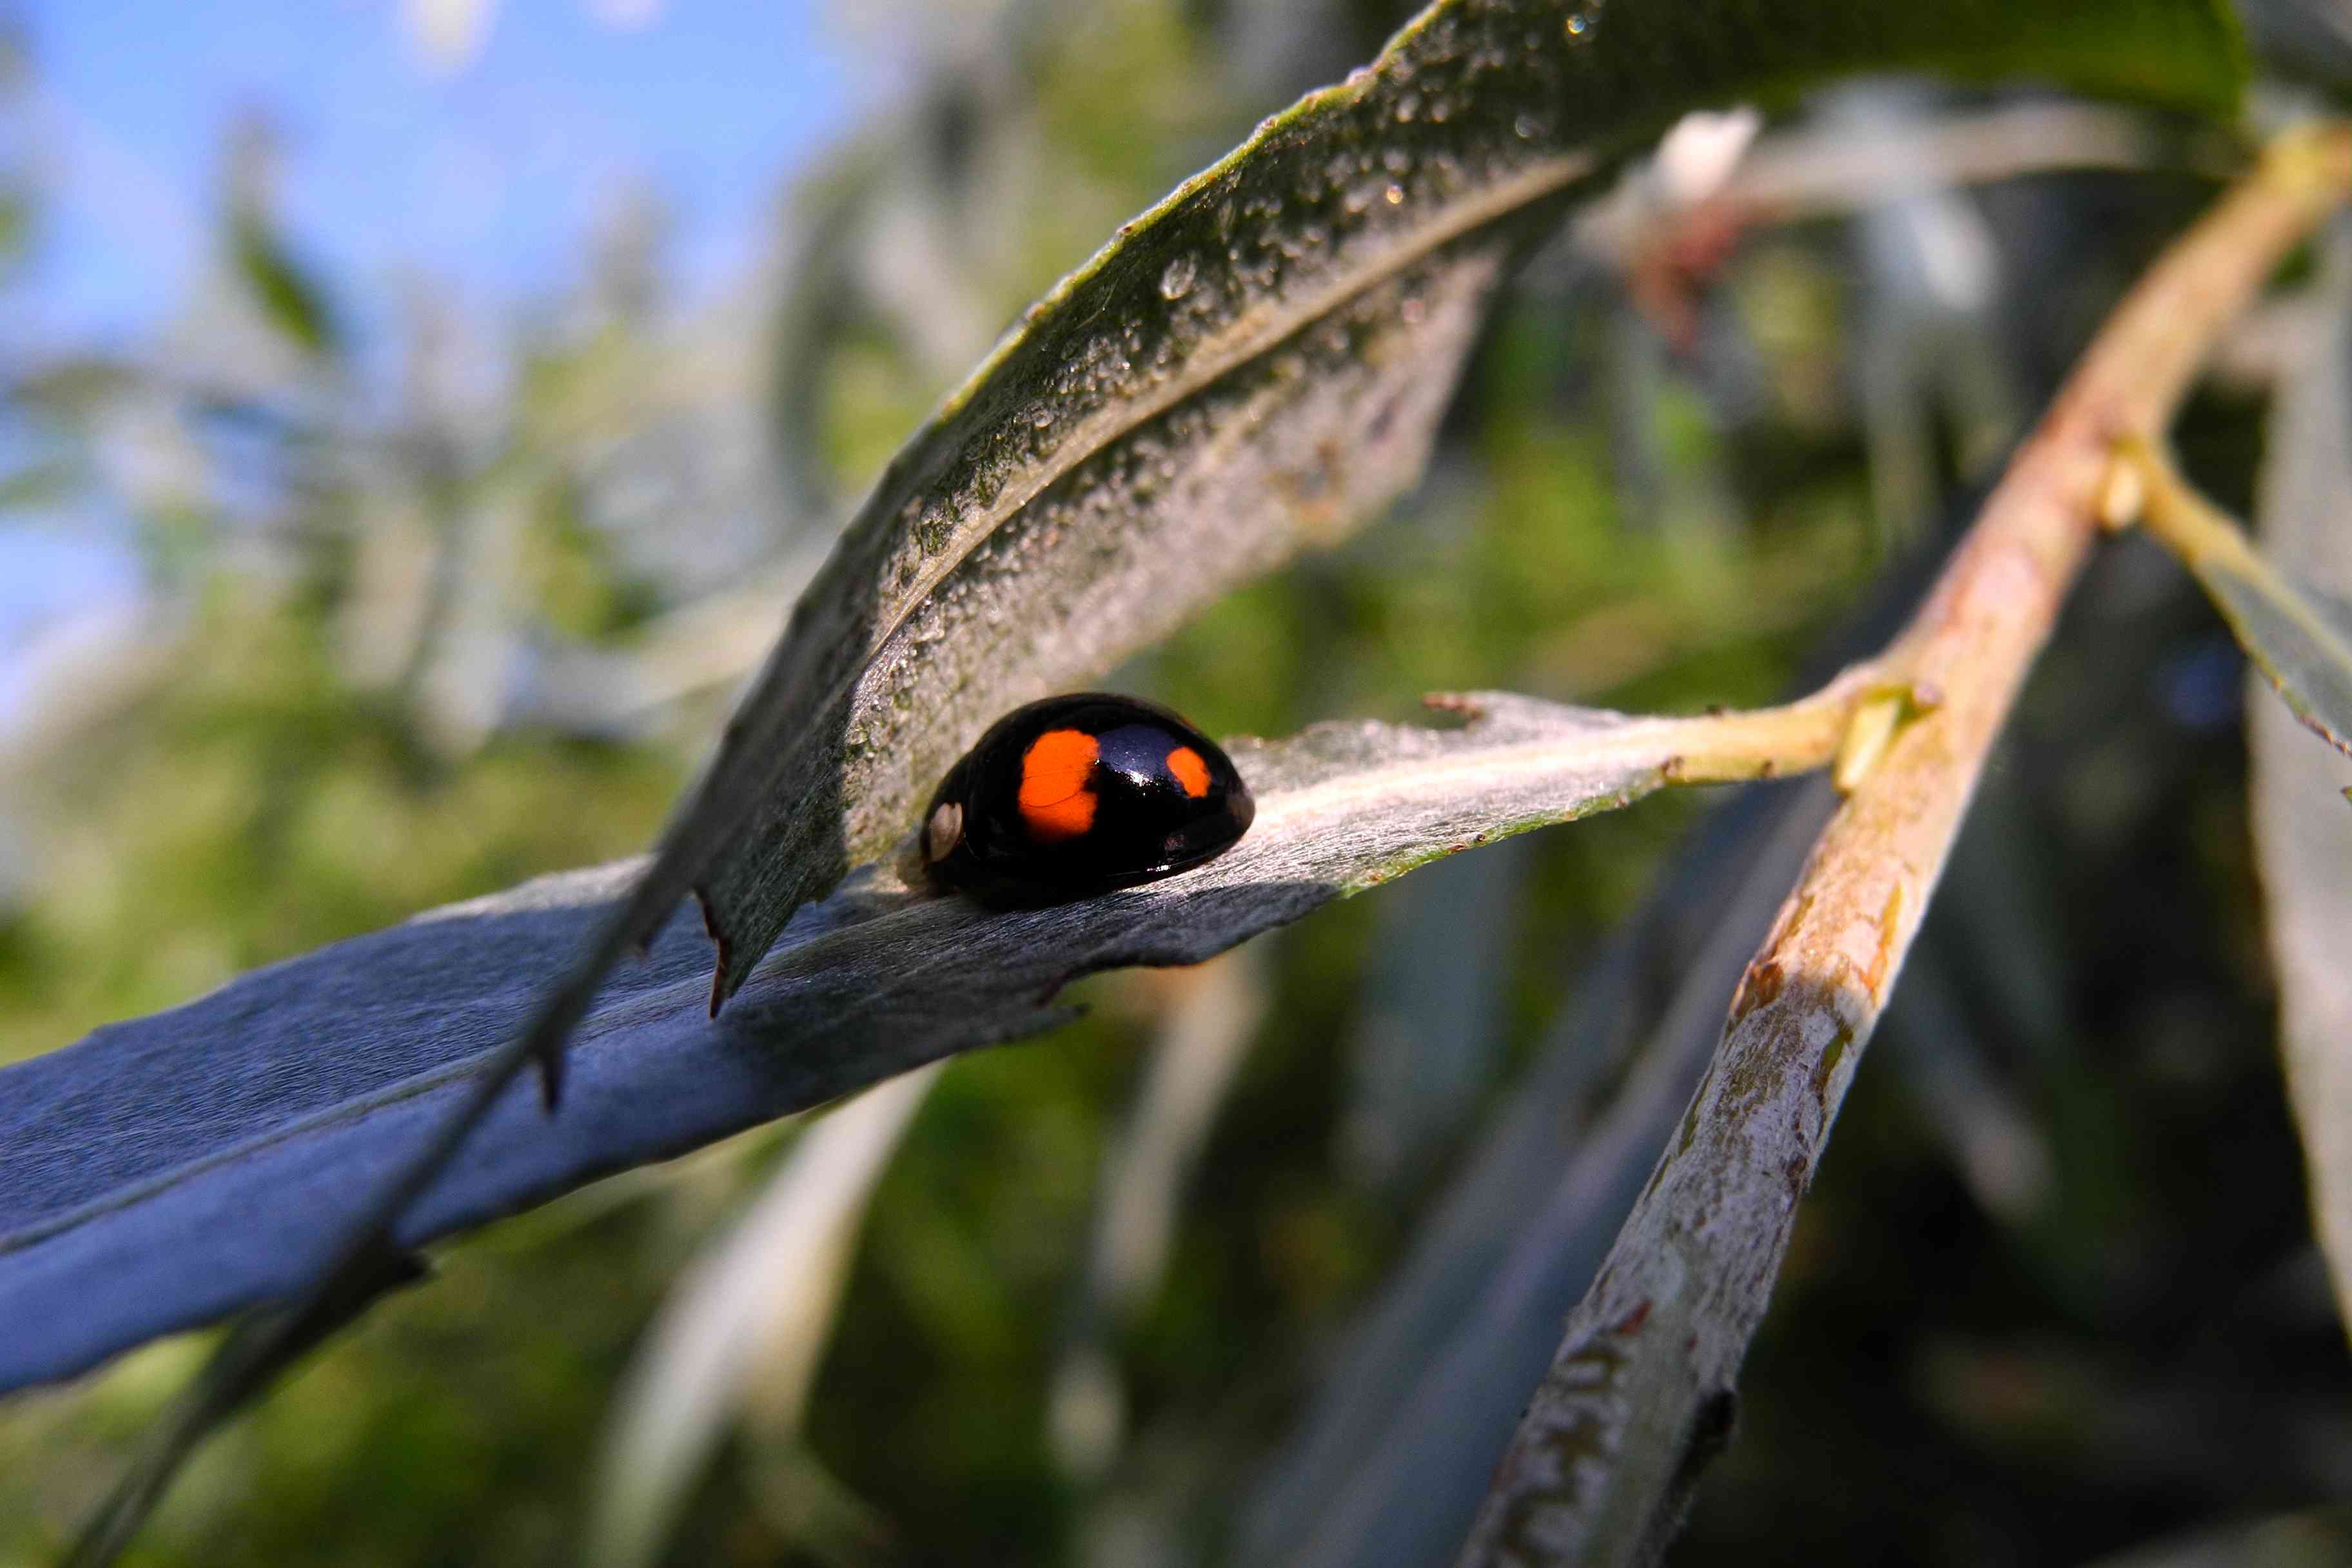 Two-spot black ladybird on willow leaf